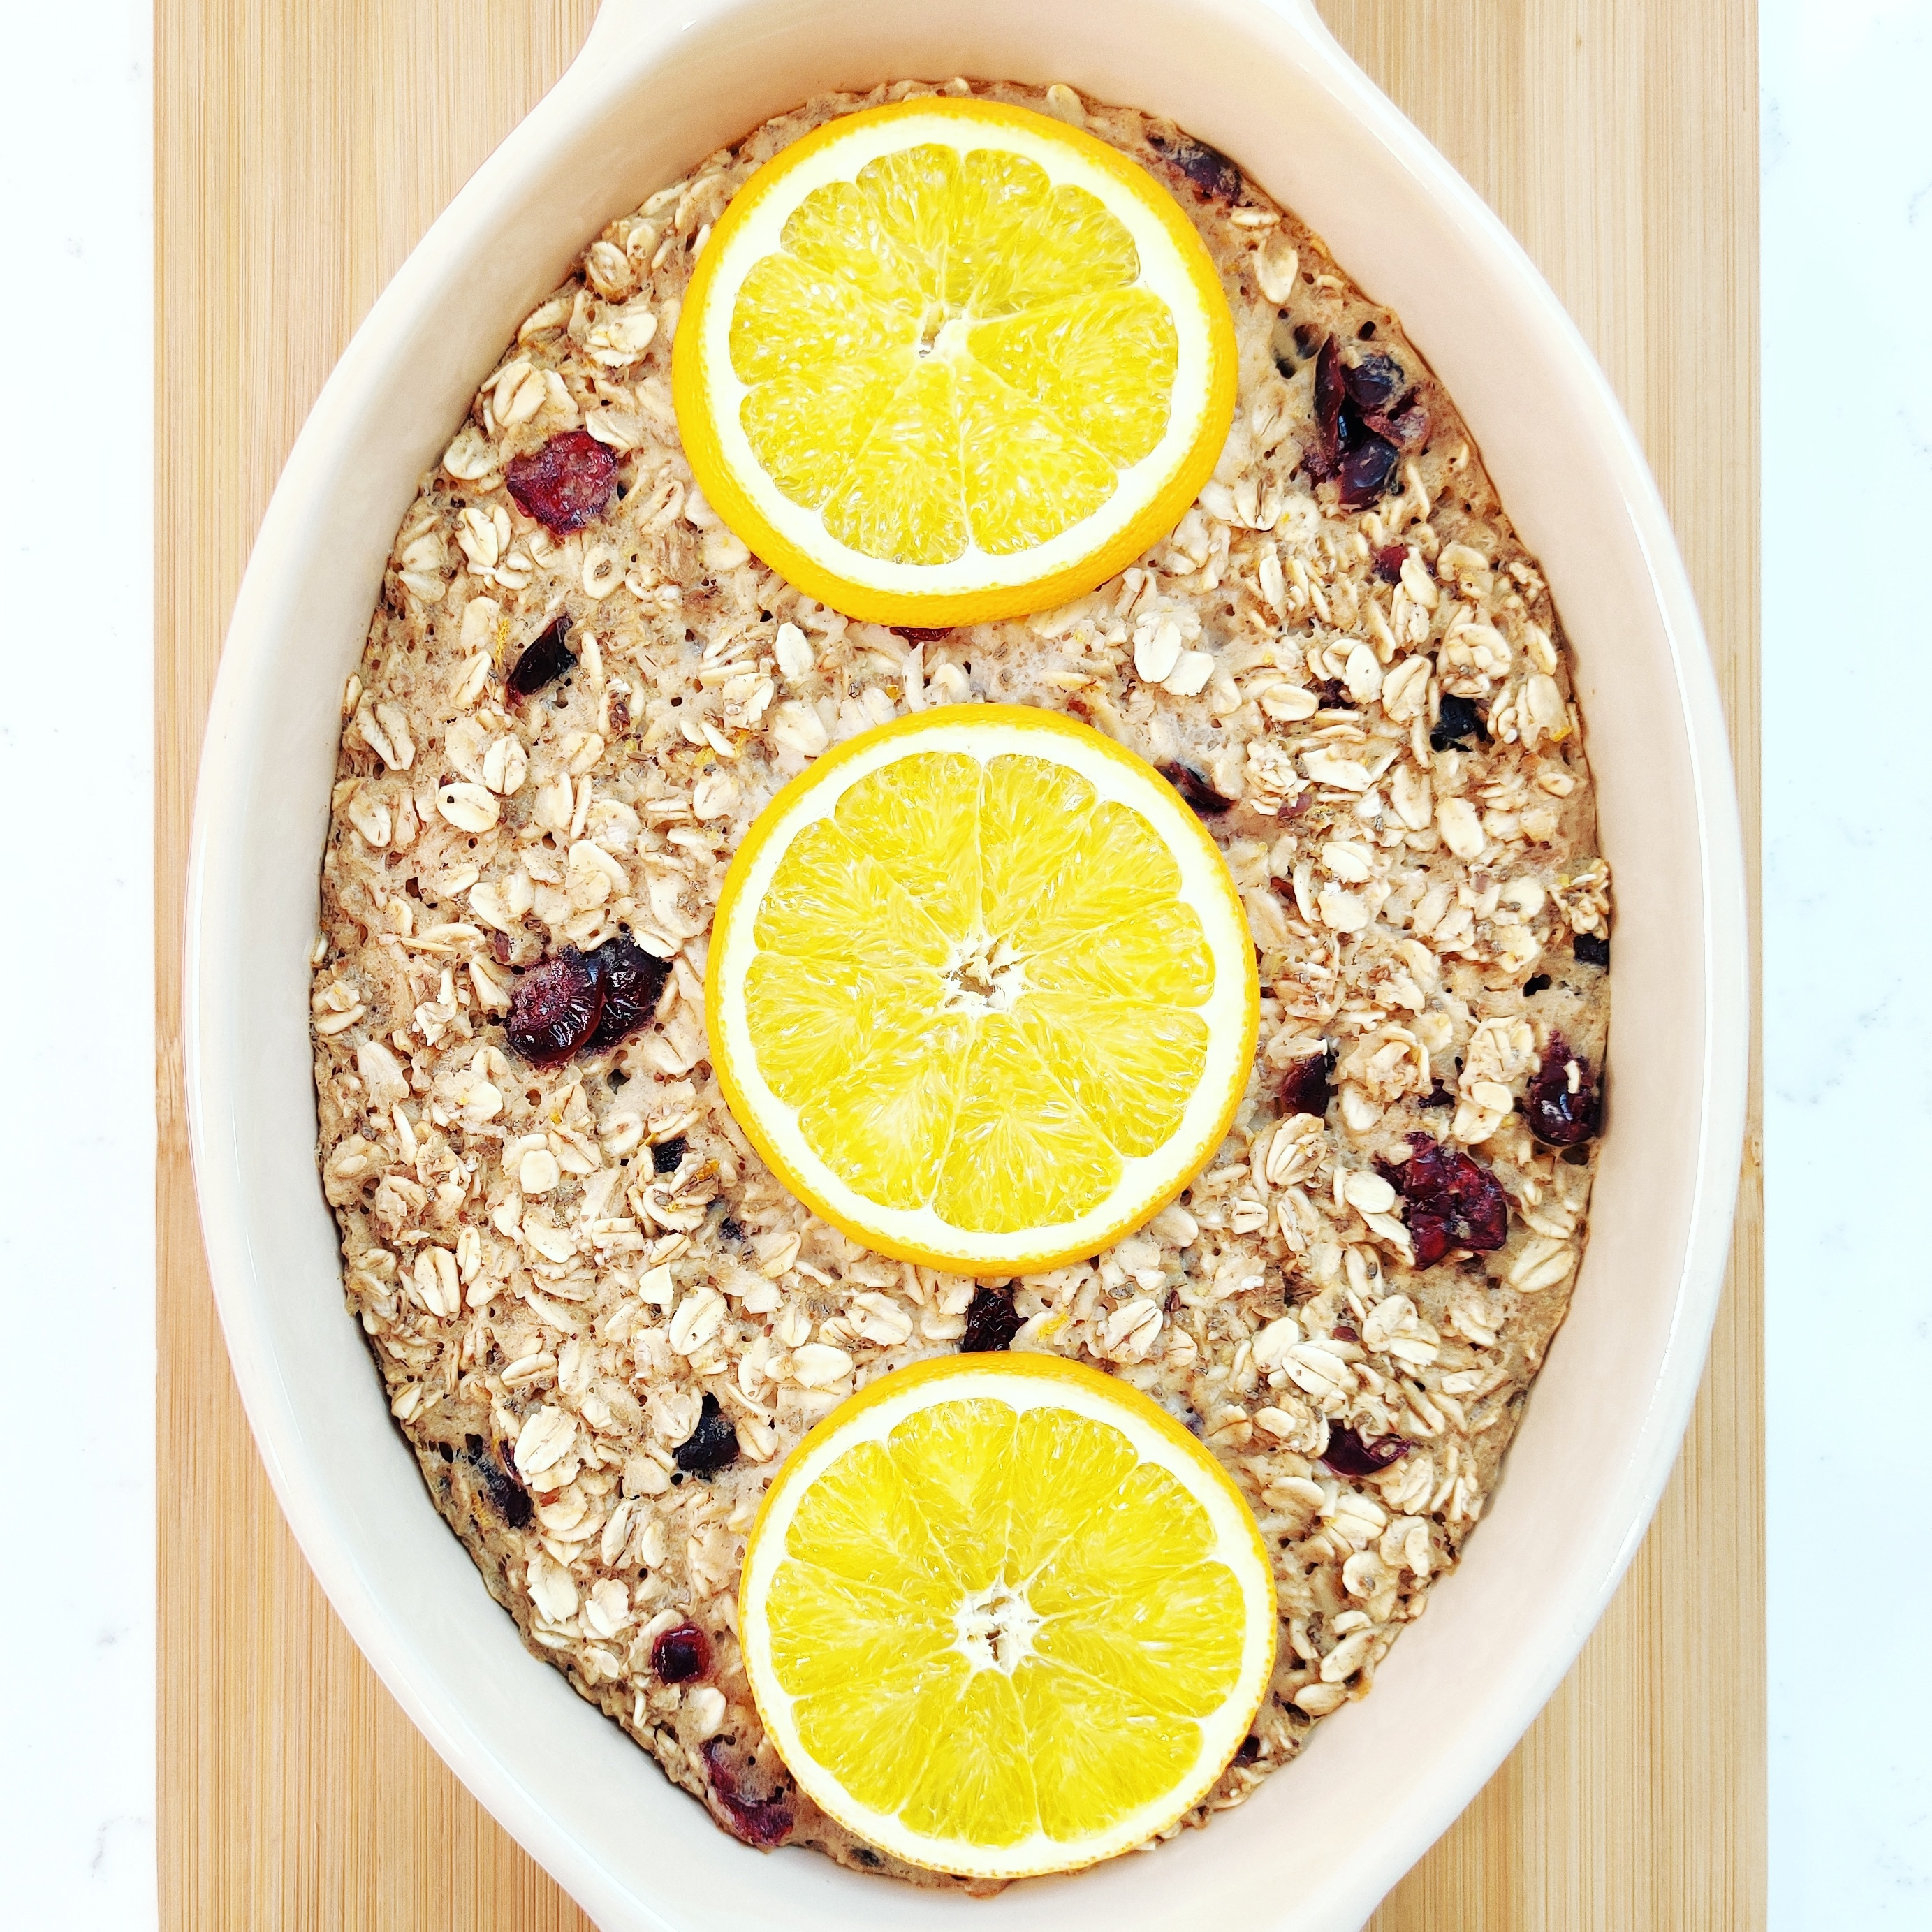 Baked Cranberry and Orange Oatmeal